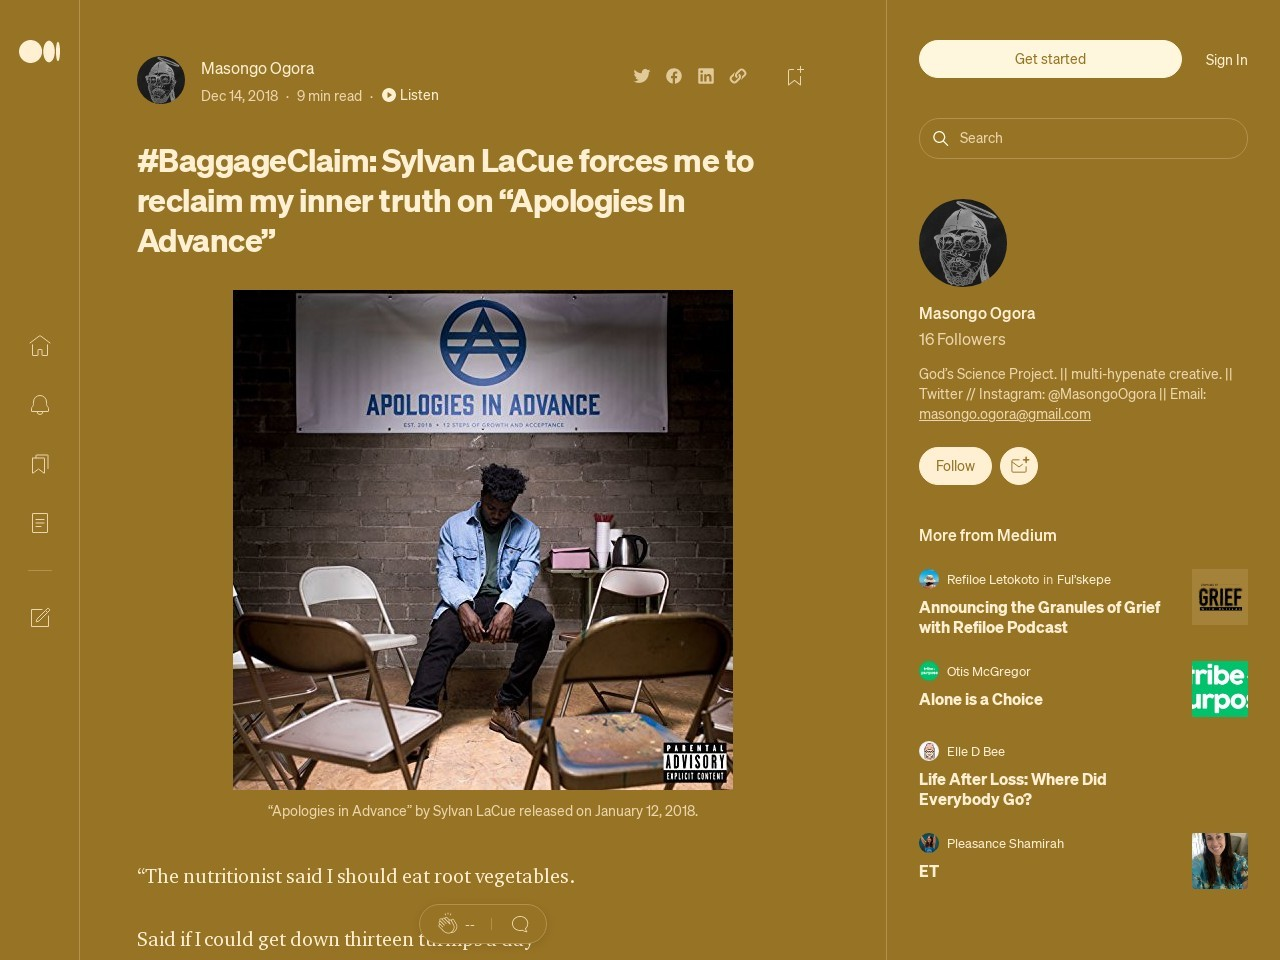 #BaggageClaim: Sylvan LaCue forces me to reclaim my inner truth on…